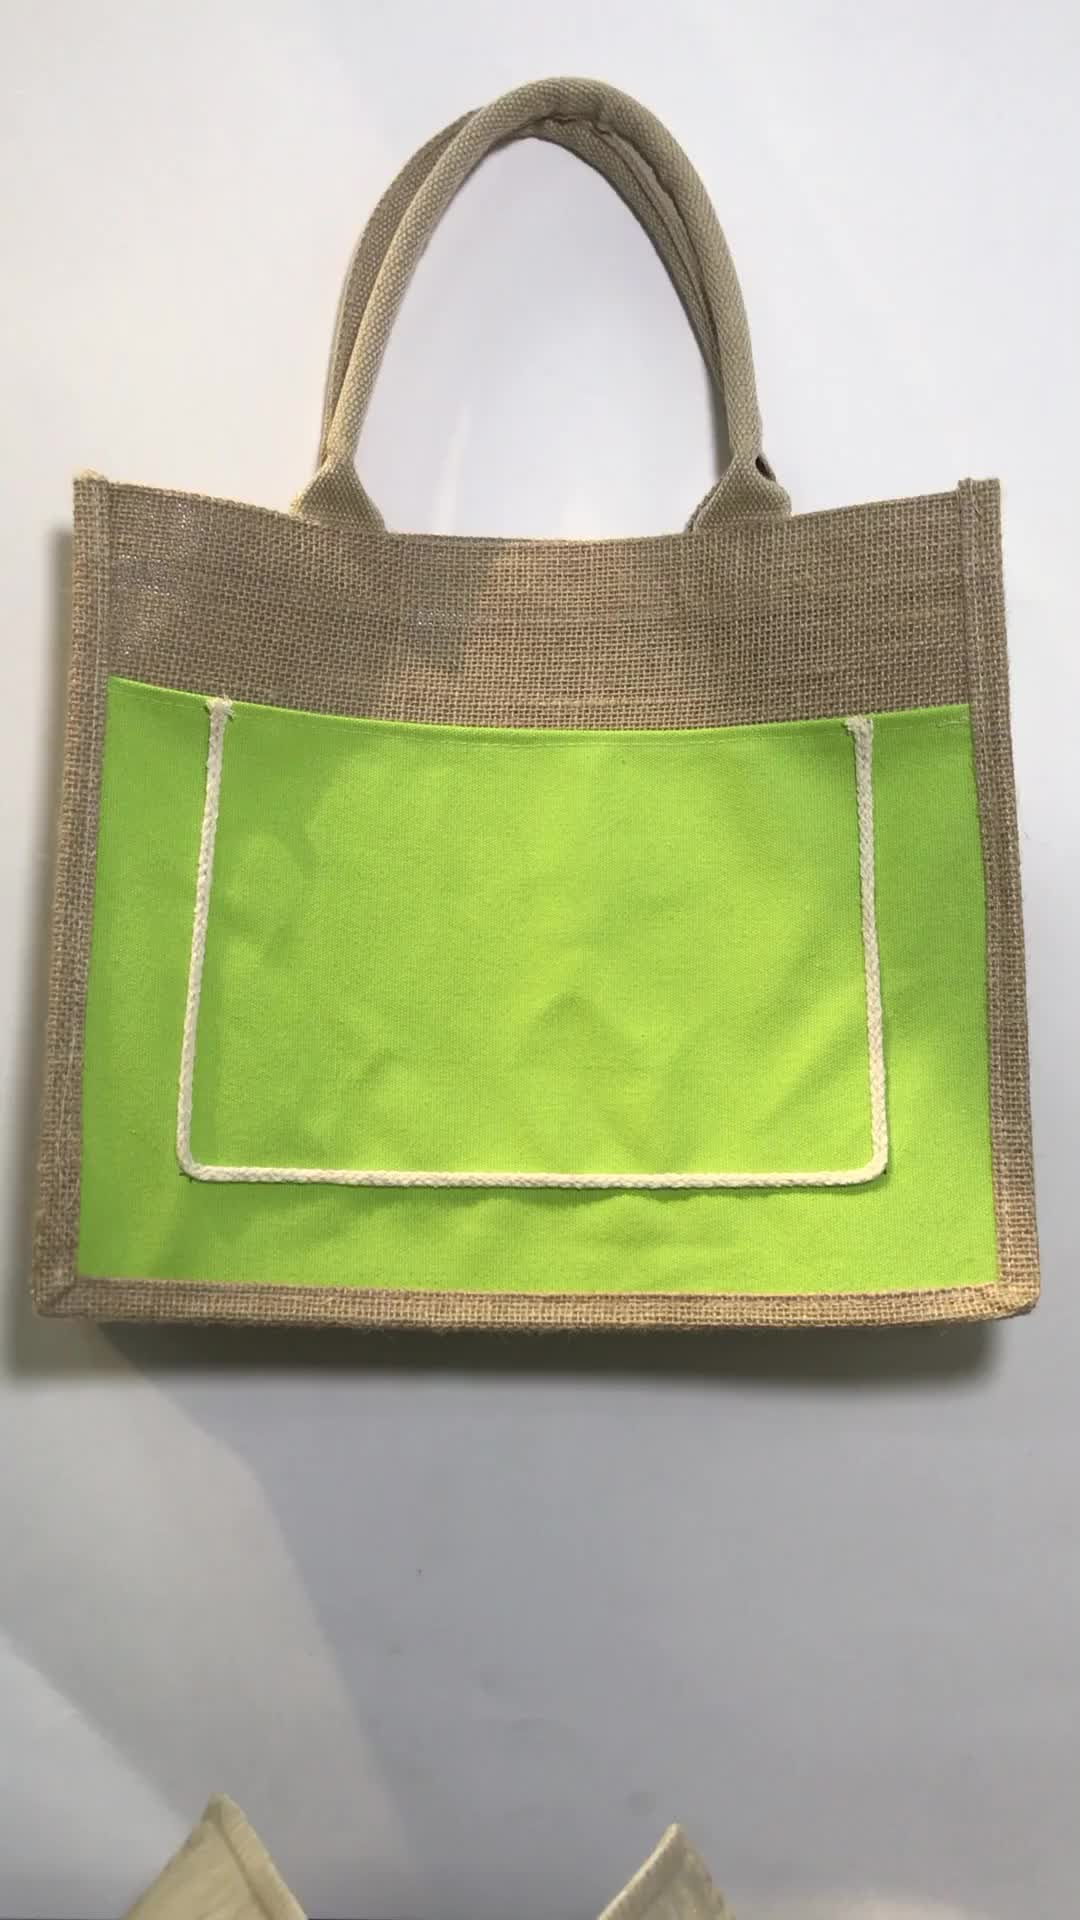 Recycle bag 100% jute bag with button shopping bag